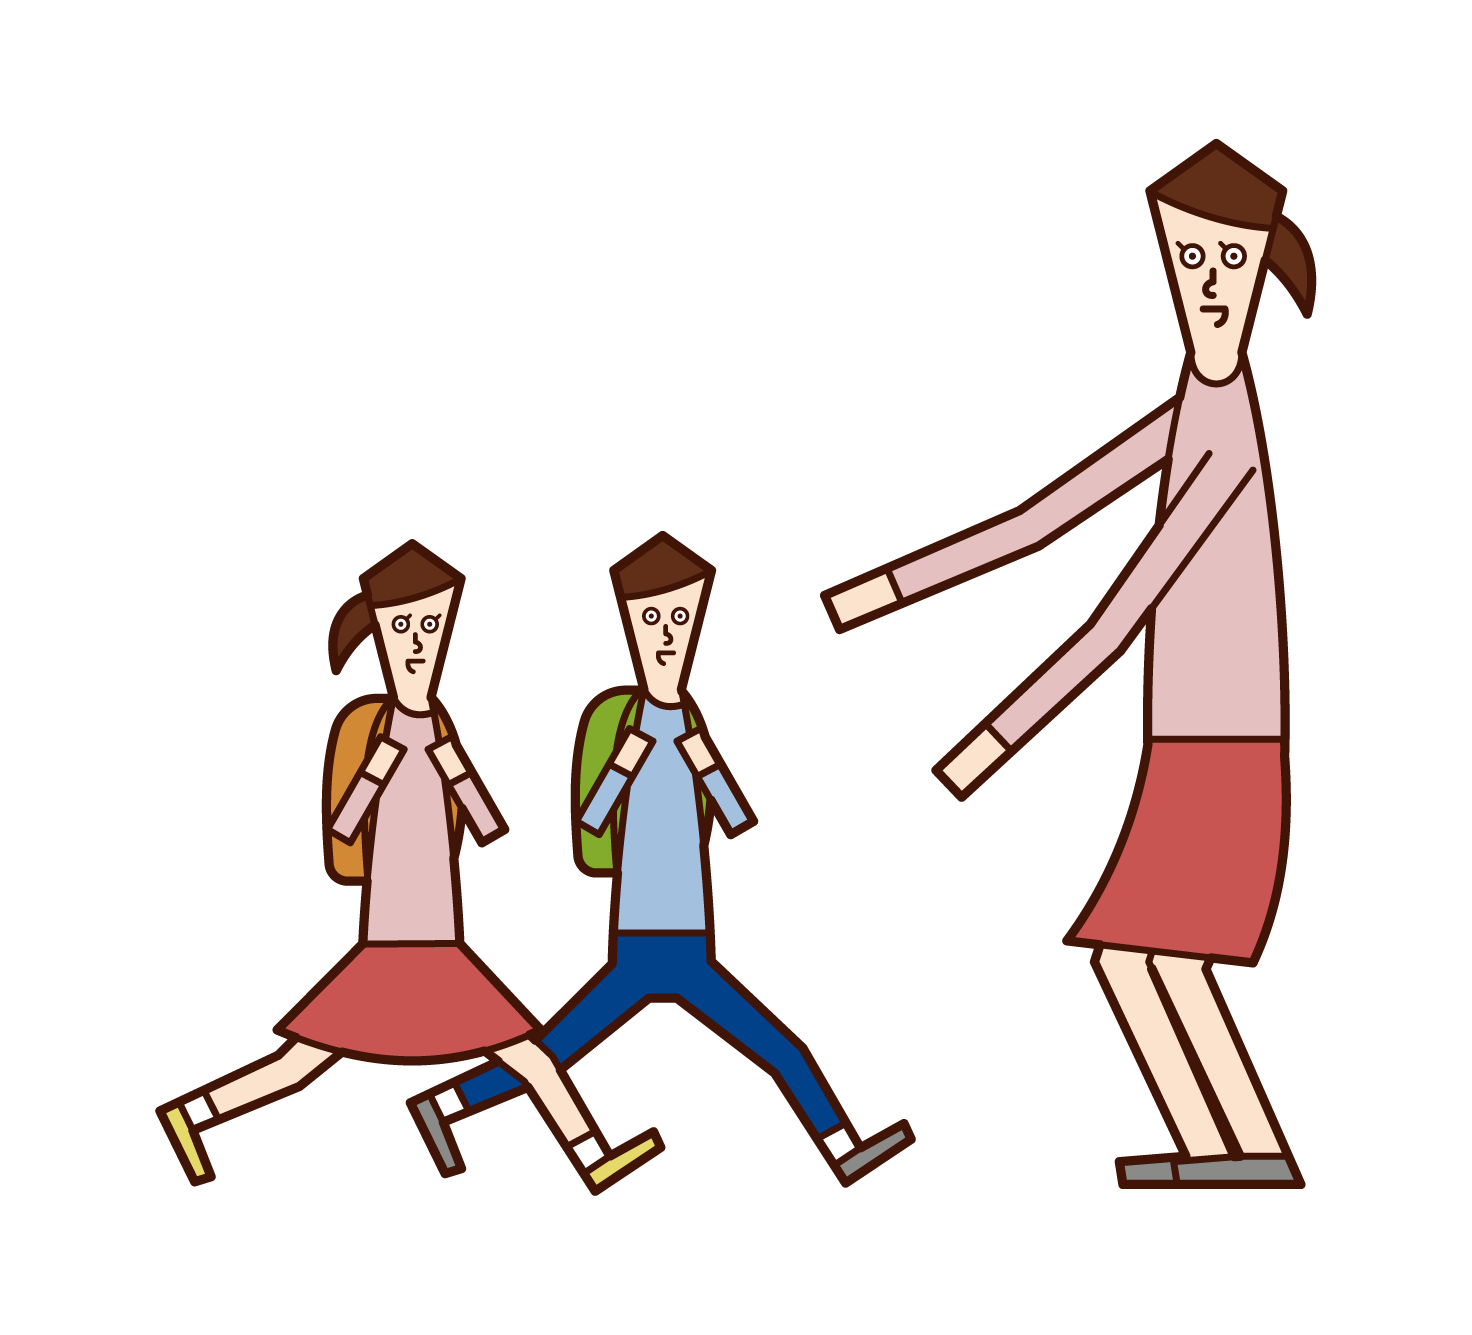 Illustration of a father greeting a child (daughter)